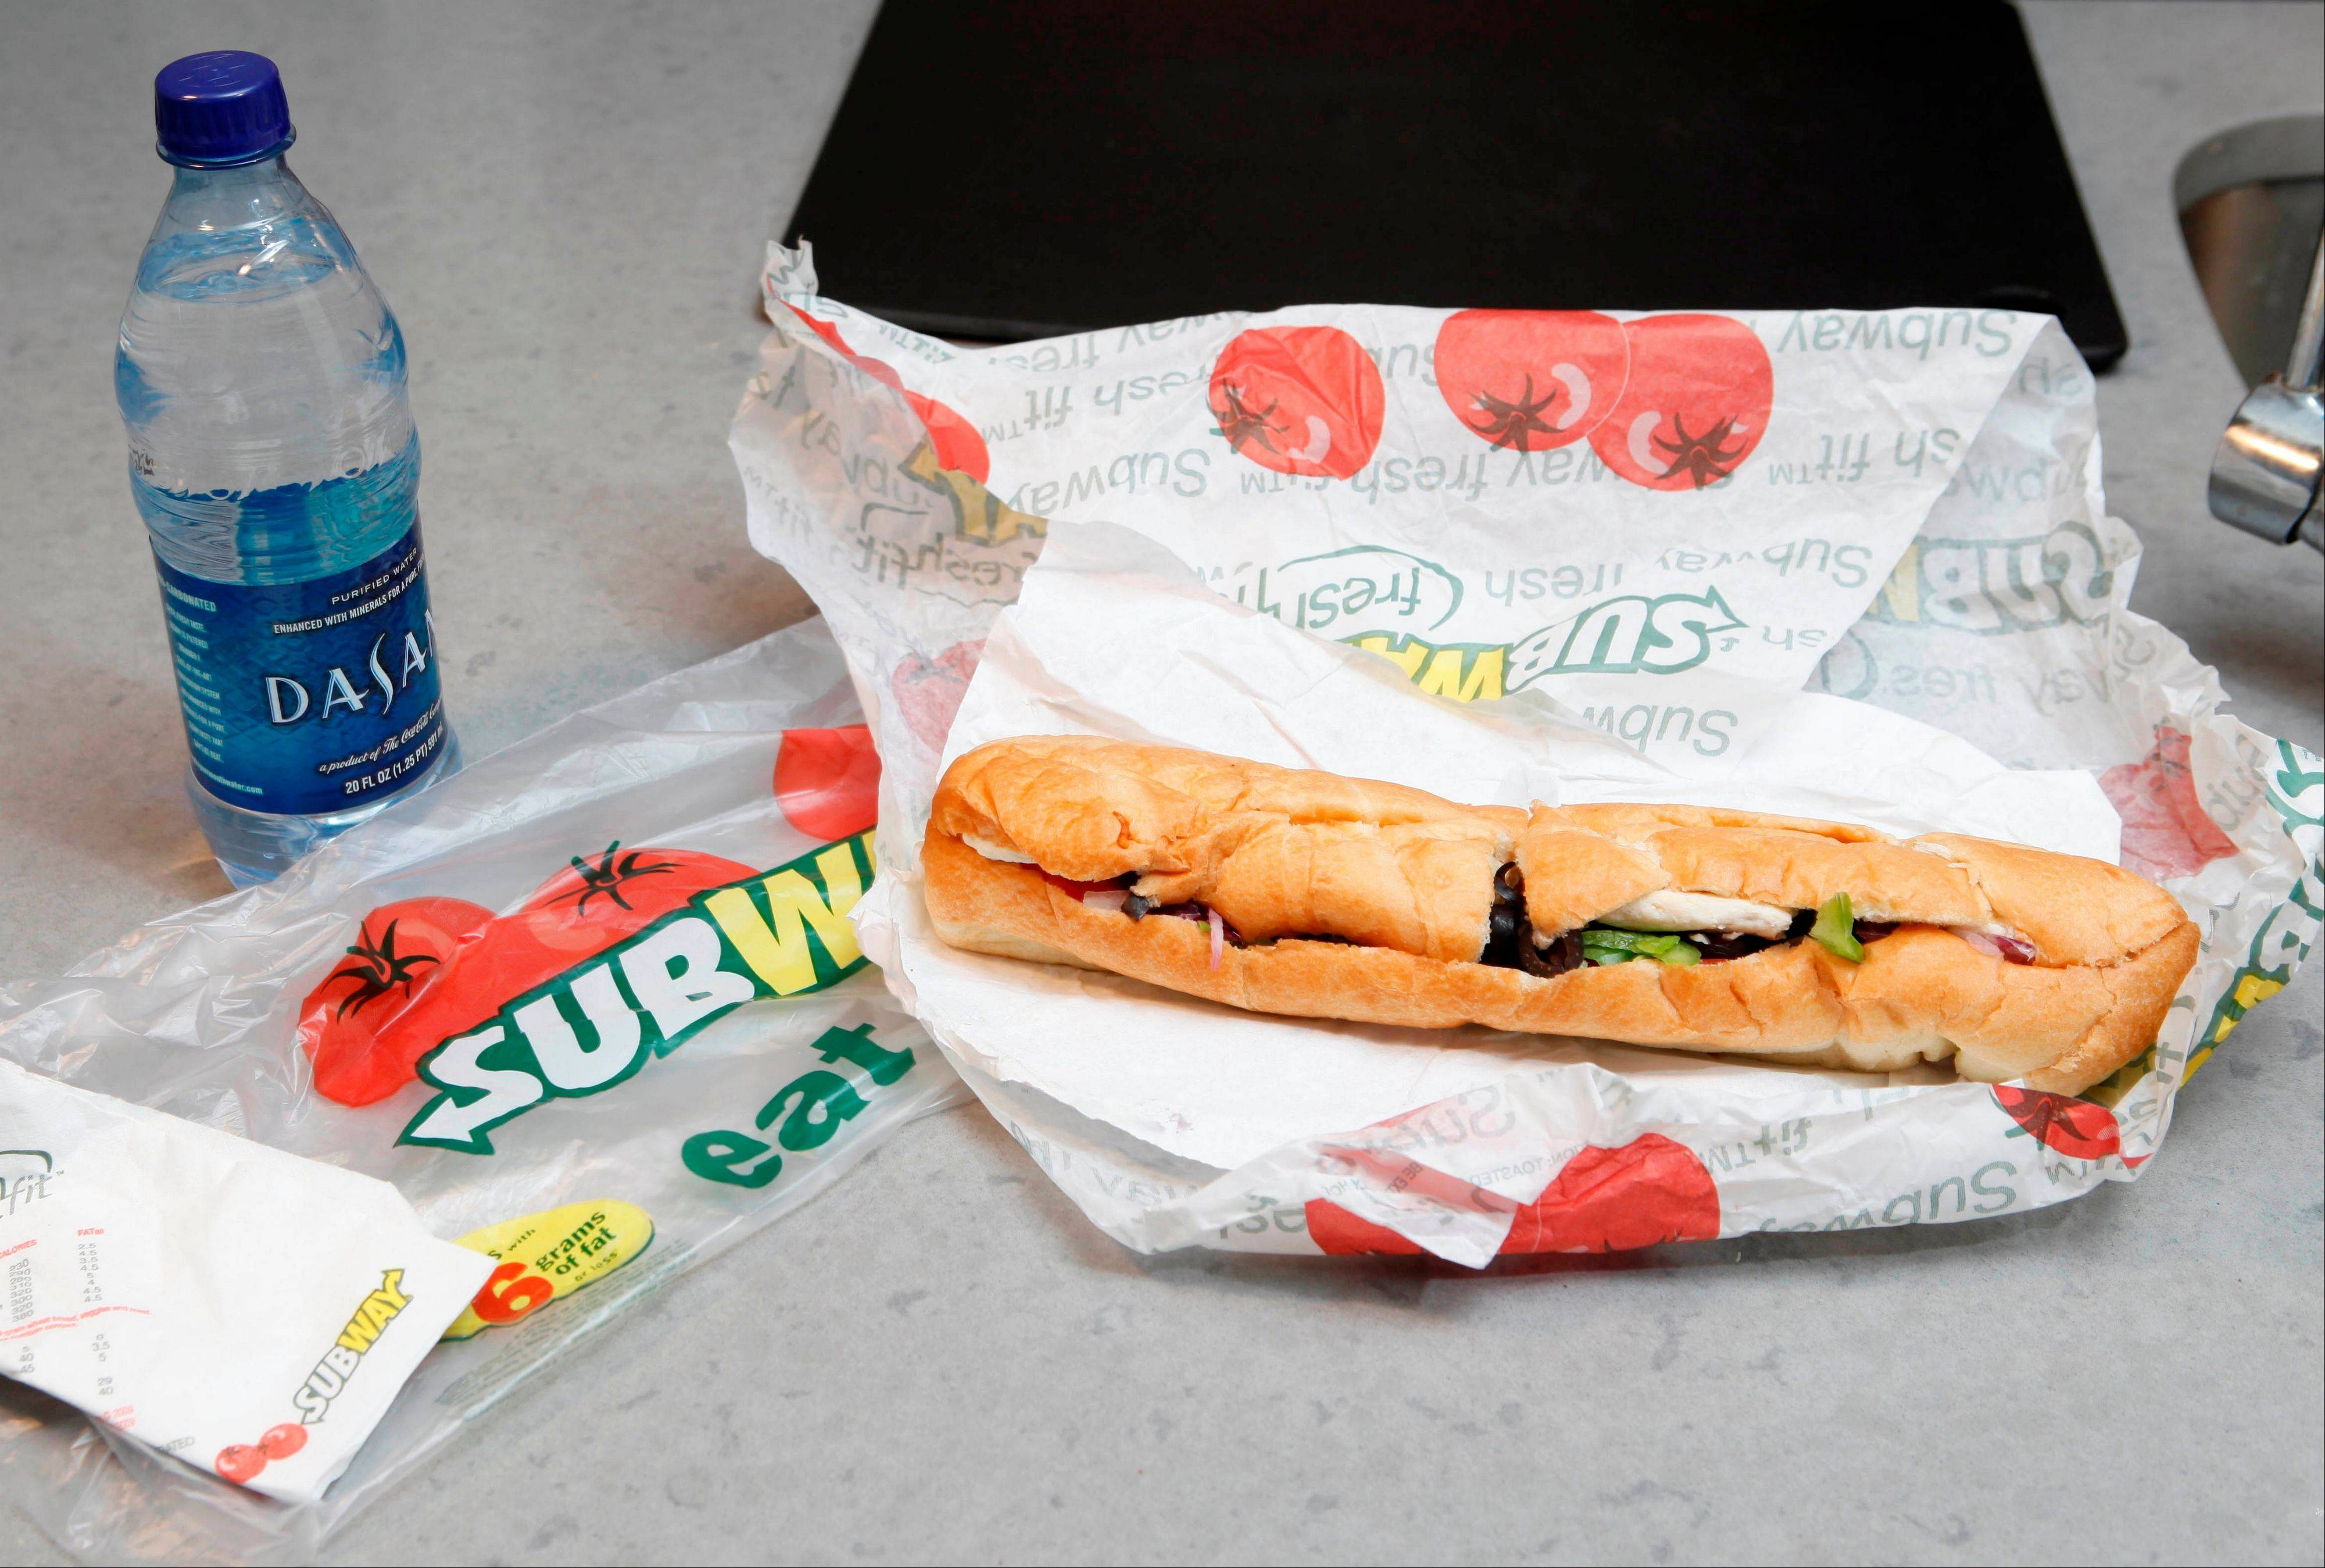 Subway, the world's largest fast food chain, is facing criticism after an Australian man posted a picture on the company's Facebook page on Jan. 16 of one of its famous sandwiches next to a tape measure that seems to shows it's not as long as promised.